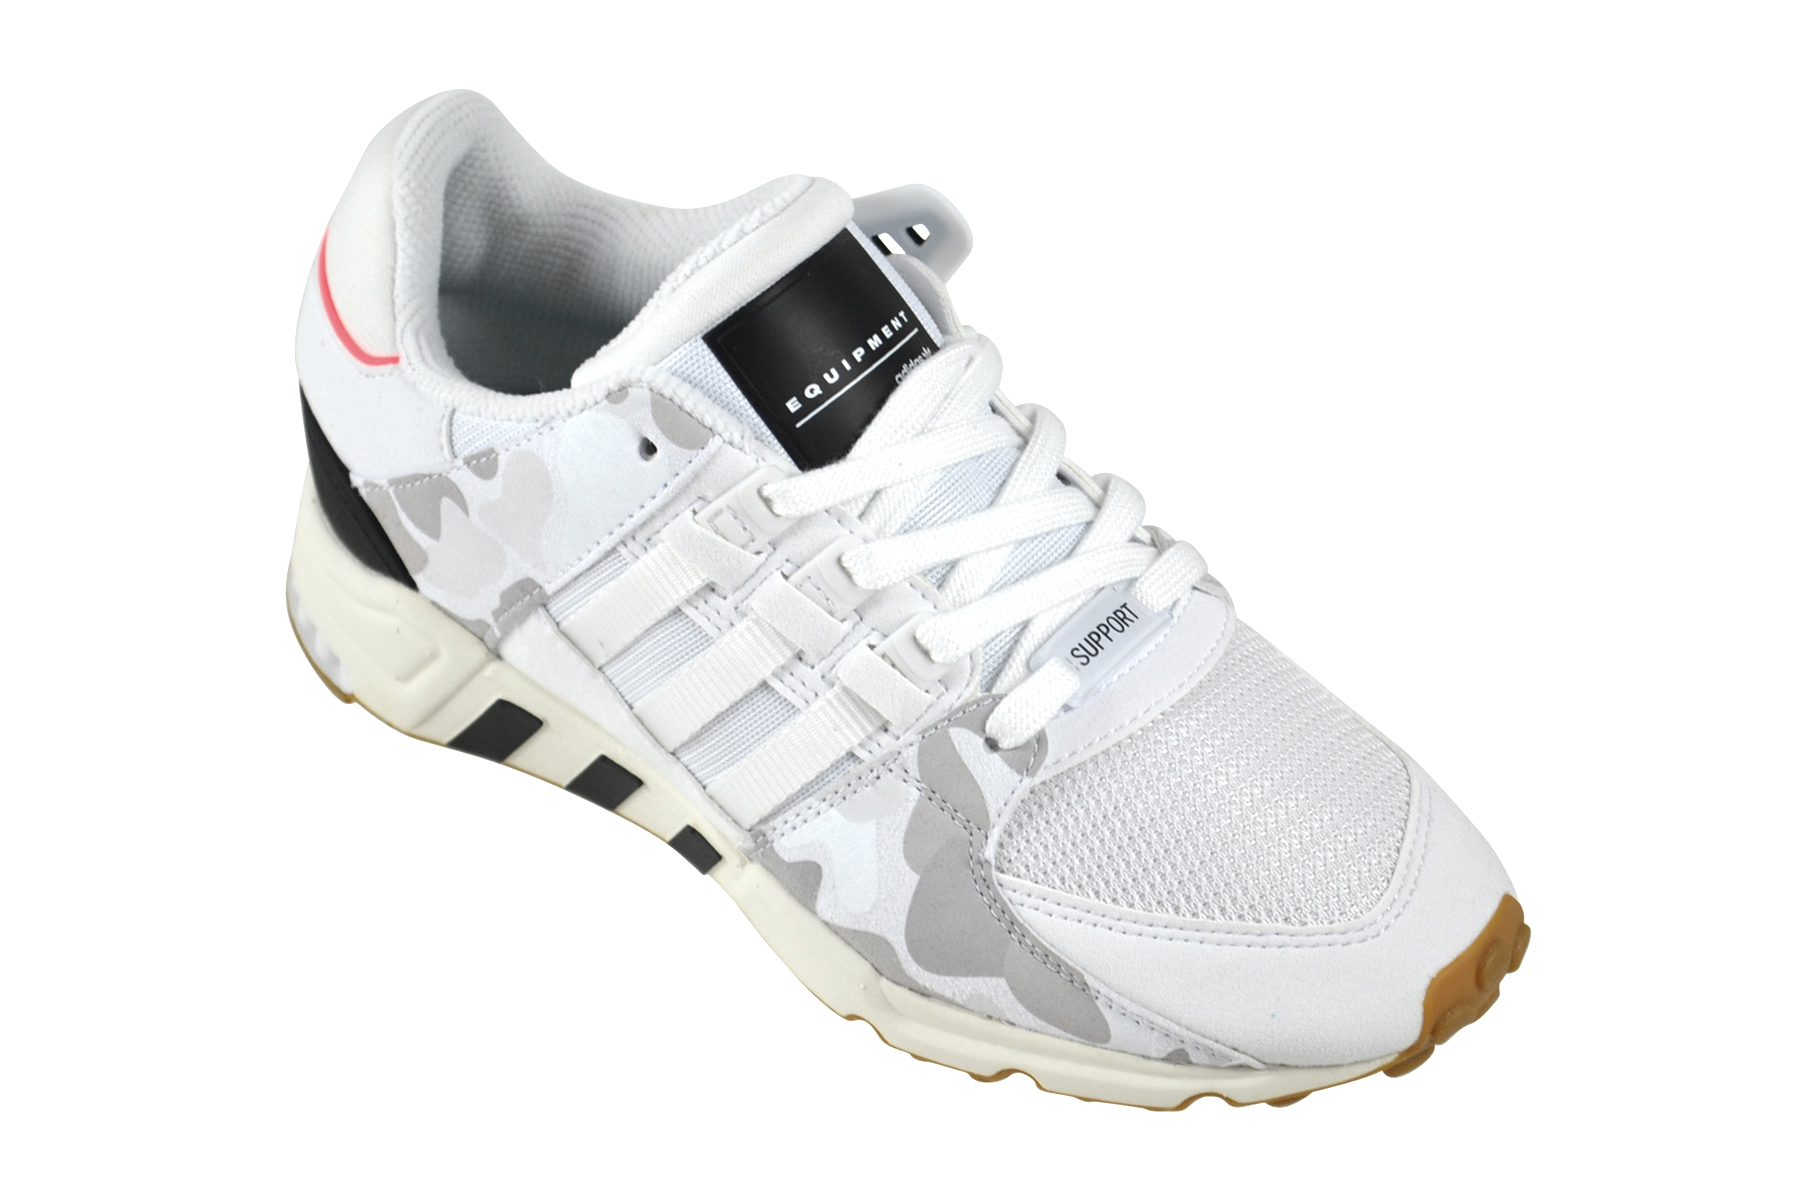 Adidas EQT Support RF Equipment white core black turbo